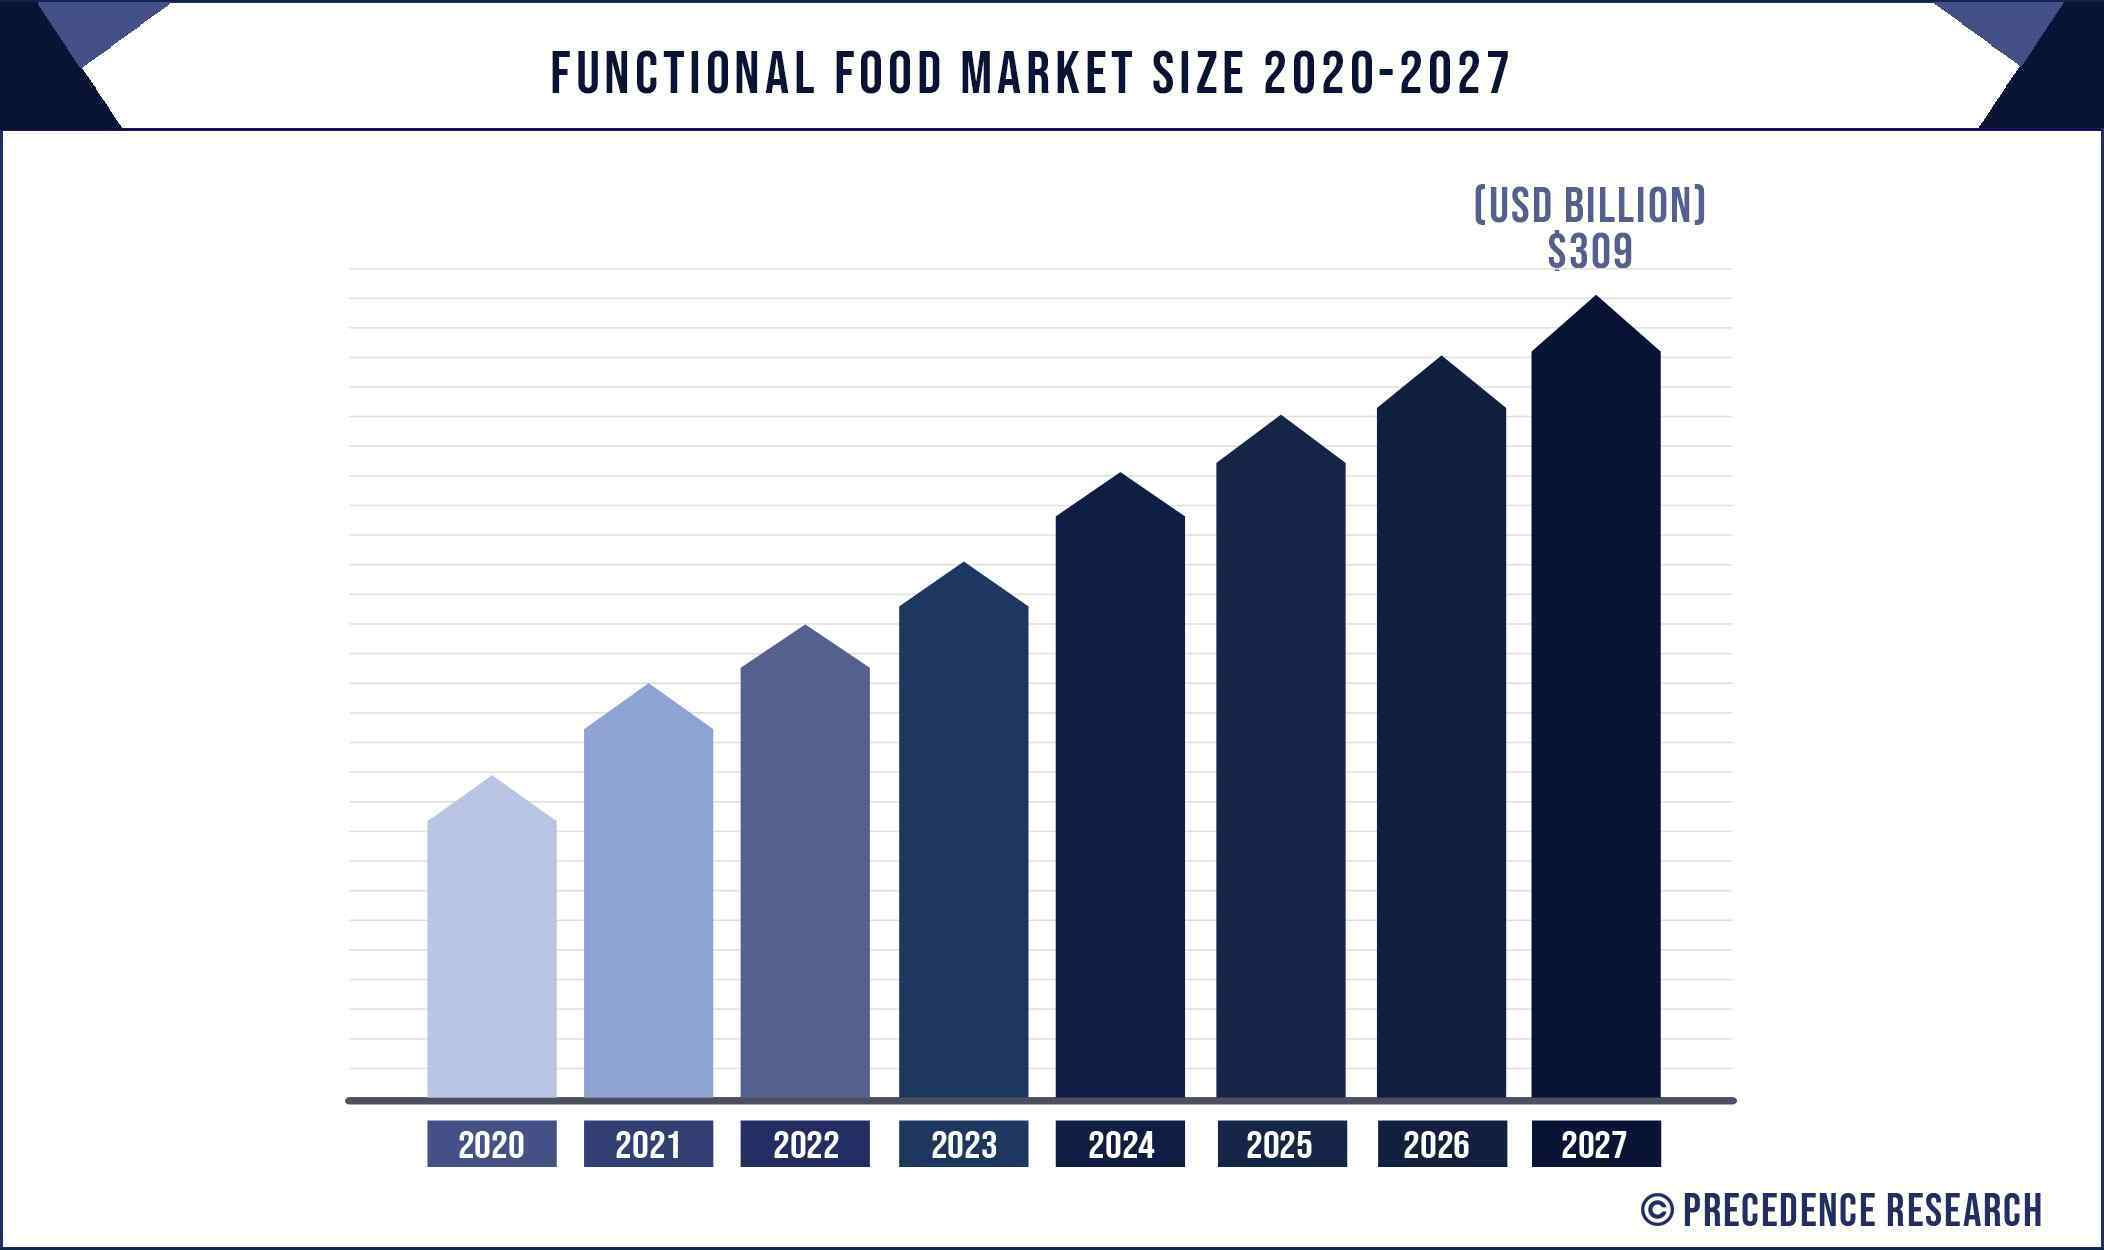 Functional Food Market Size 2020 to 2027